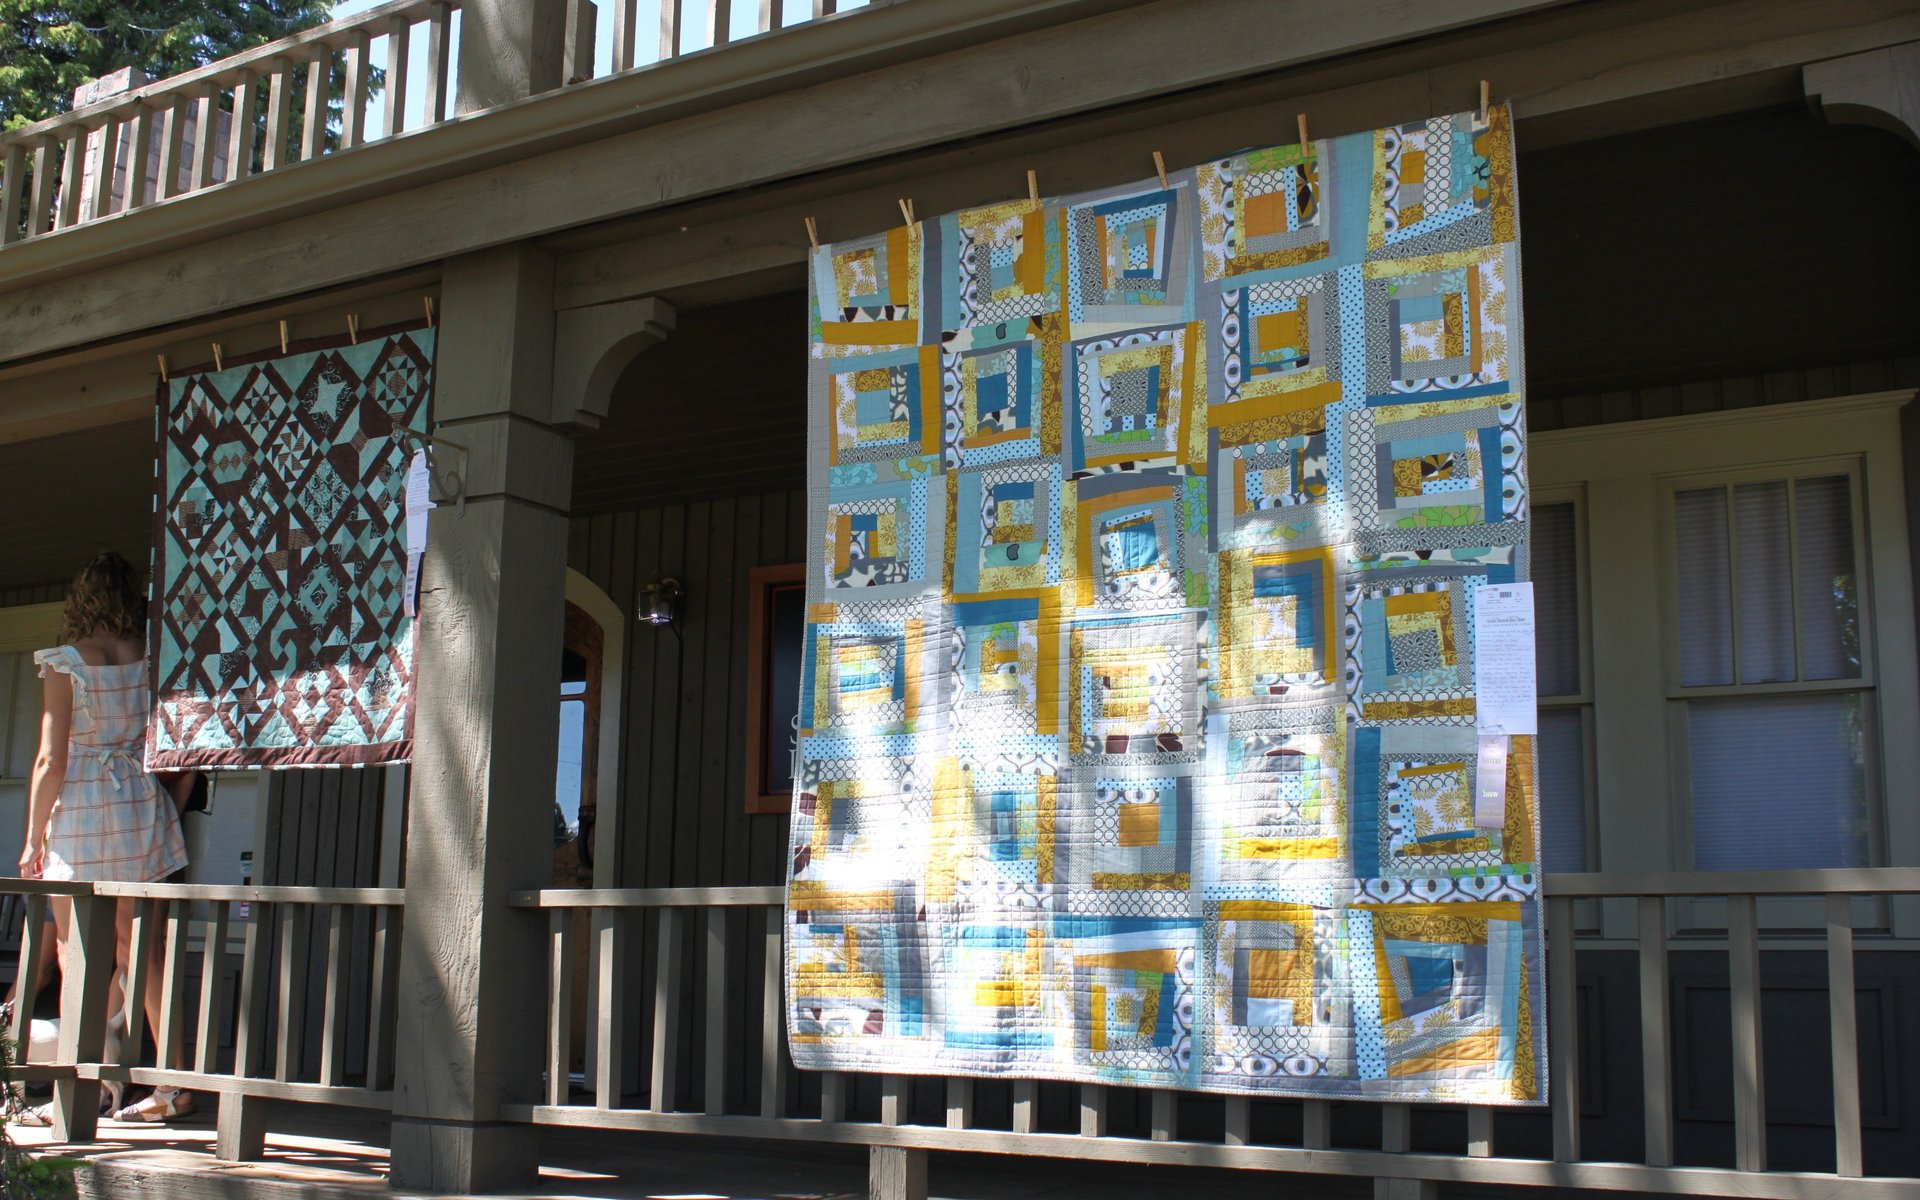 Sisters Outdoor Quilt Show in Oregon - Best Season 2020